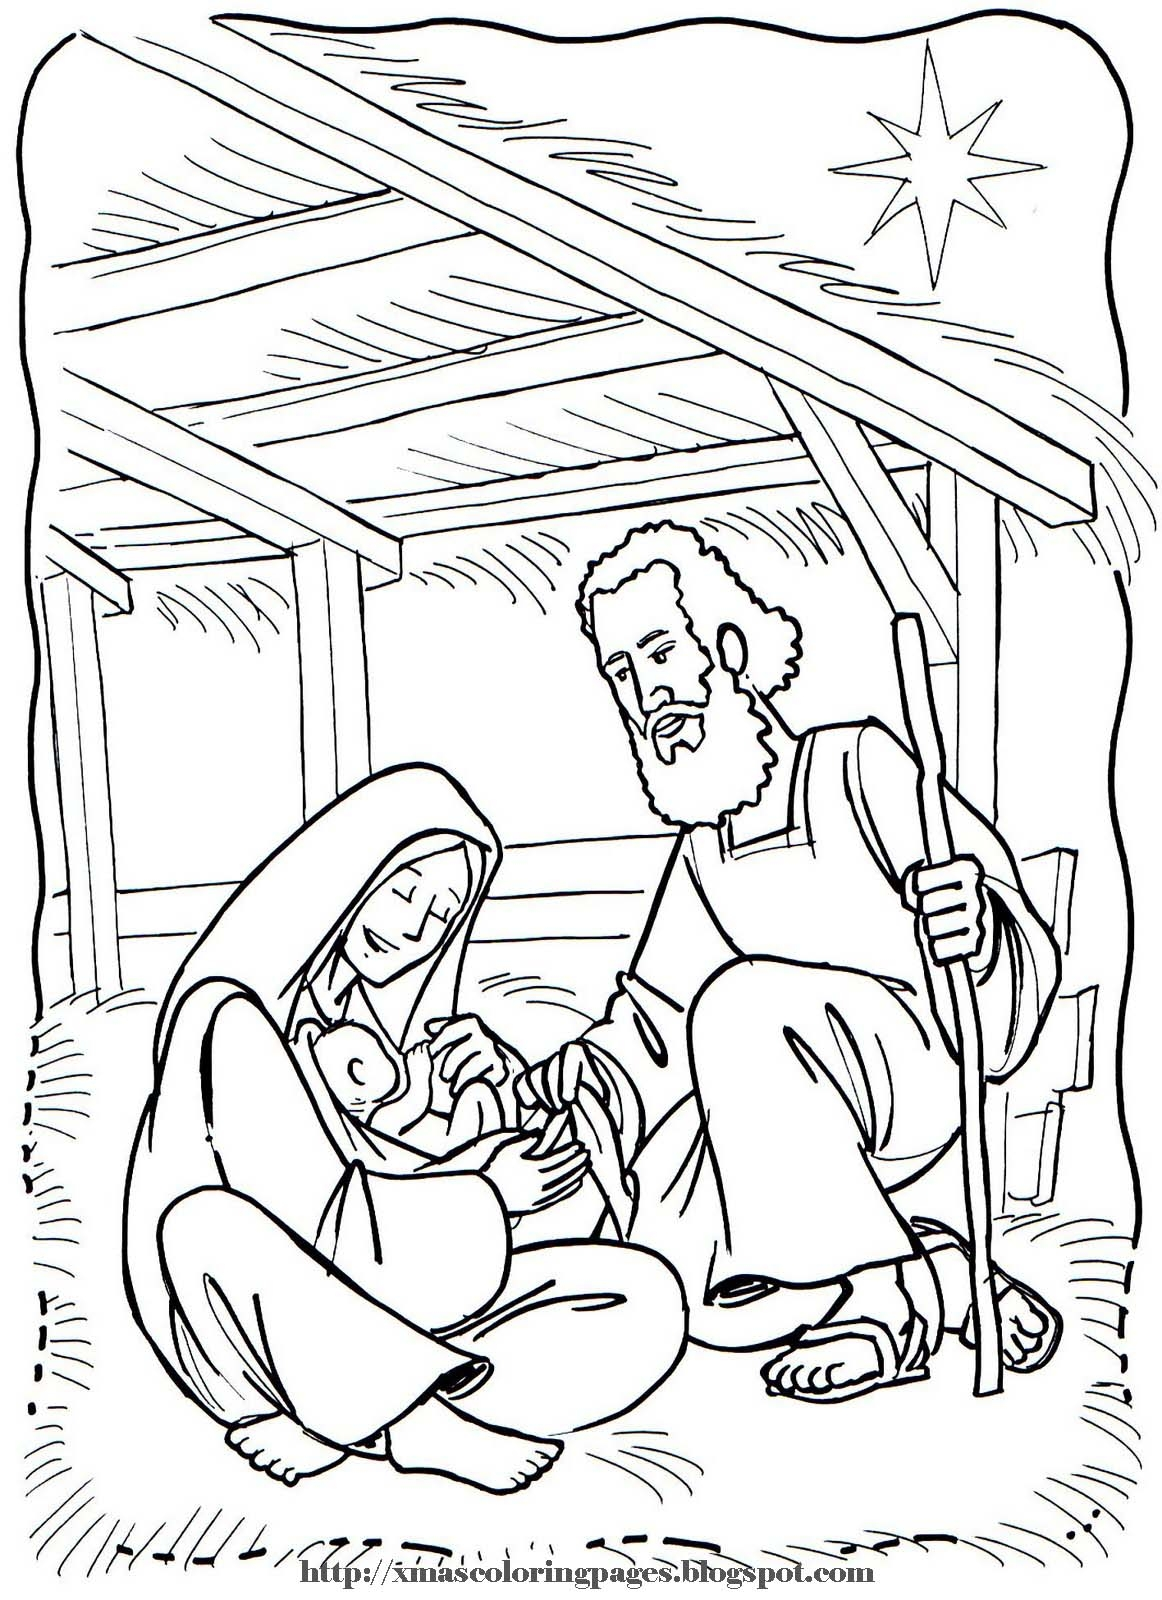 baby jesus coloring pages - baby jesus coloring page nativity